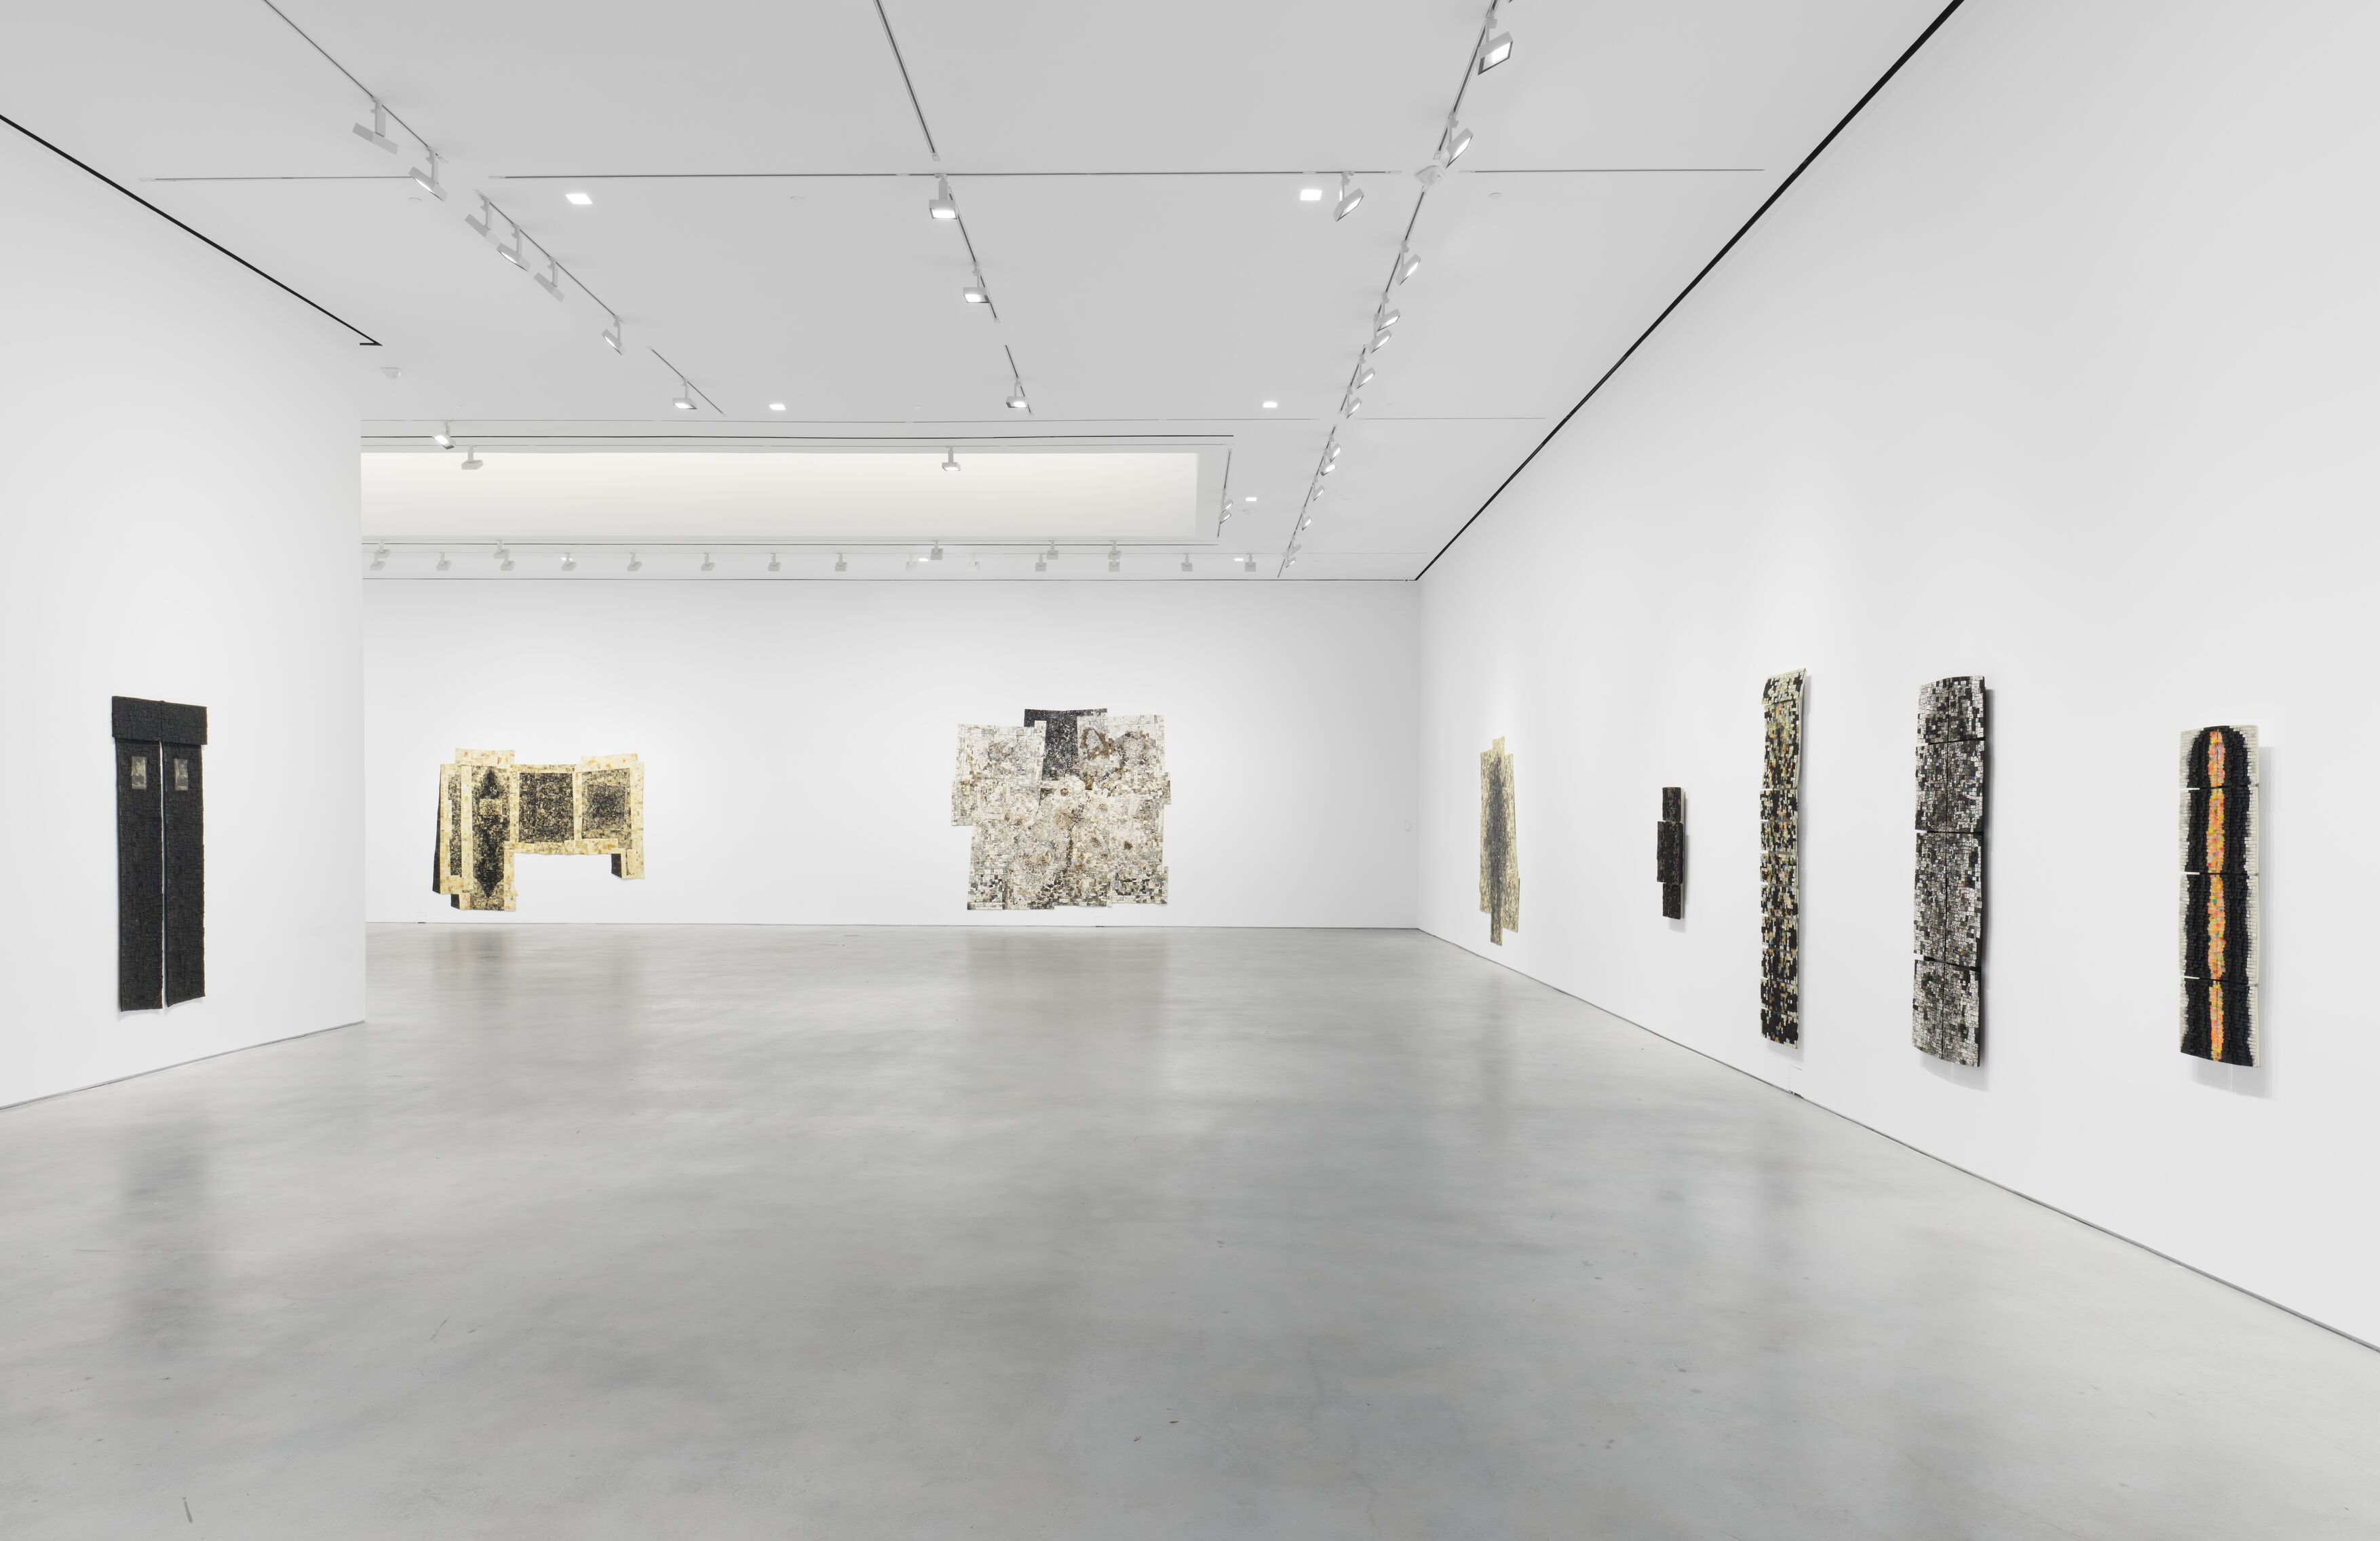 Installation view, 'Jack Whitten. I AM THE OBJECT' Hauser & Wirth New York, 22nd Street, 2020. © Jack Whitten Estate Courtesy the Jack Whitten Estate and Hauser & Wirth Photo: Thomas Barratt